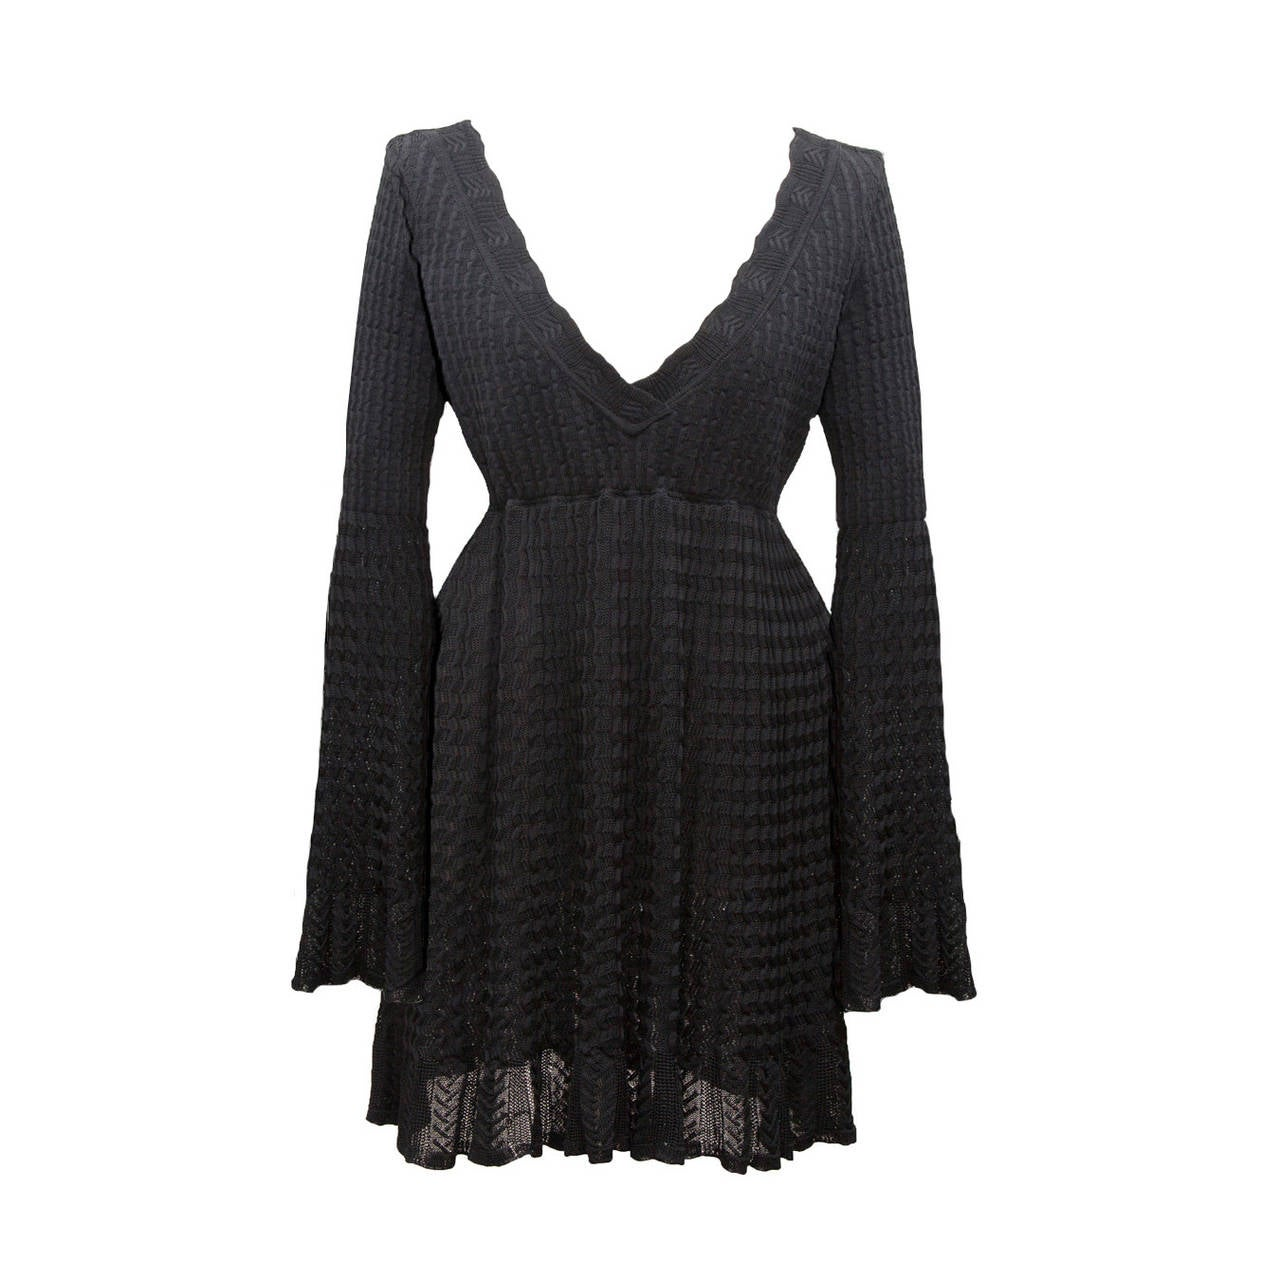 Alaia Black Knit Top Dress 1992 1